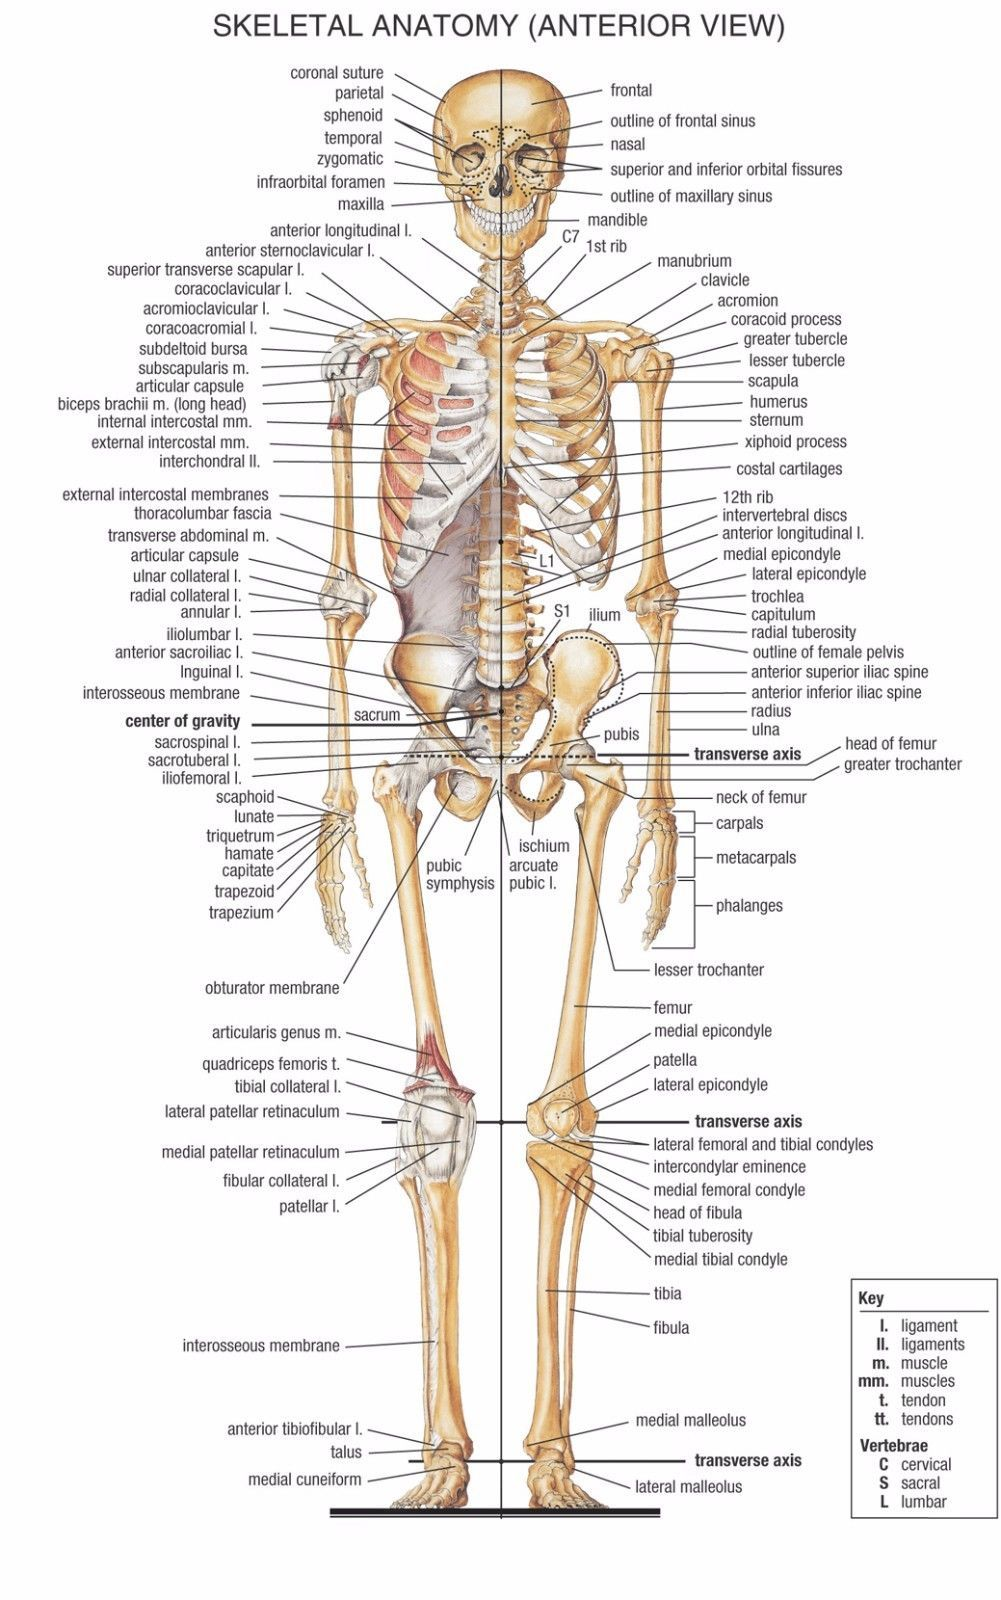 499 human skeletal system anterior view poster anatomical chart 499 human skeletal system anterior view poster anatomical chart anatomy doctor ebay collectibles ccuart Image collections